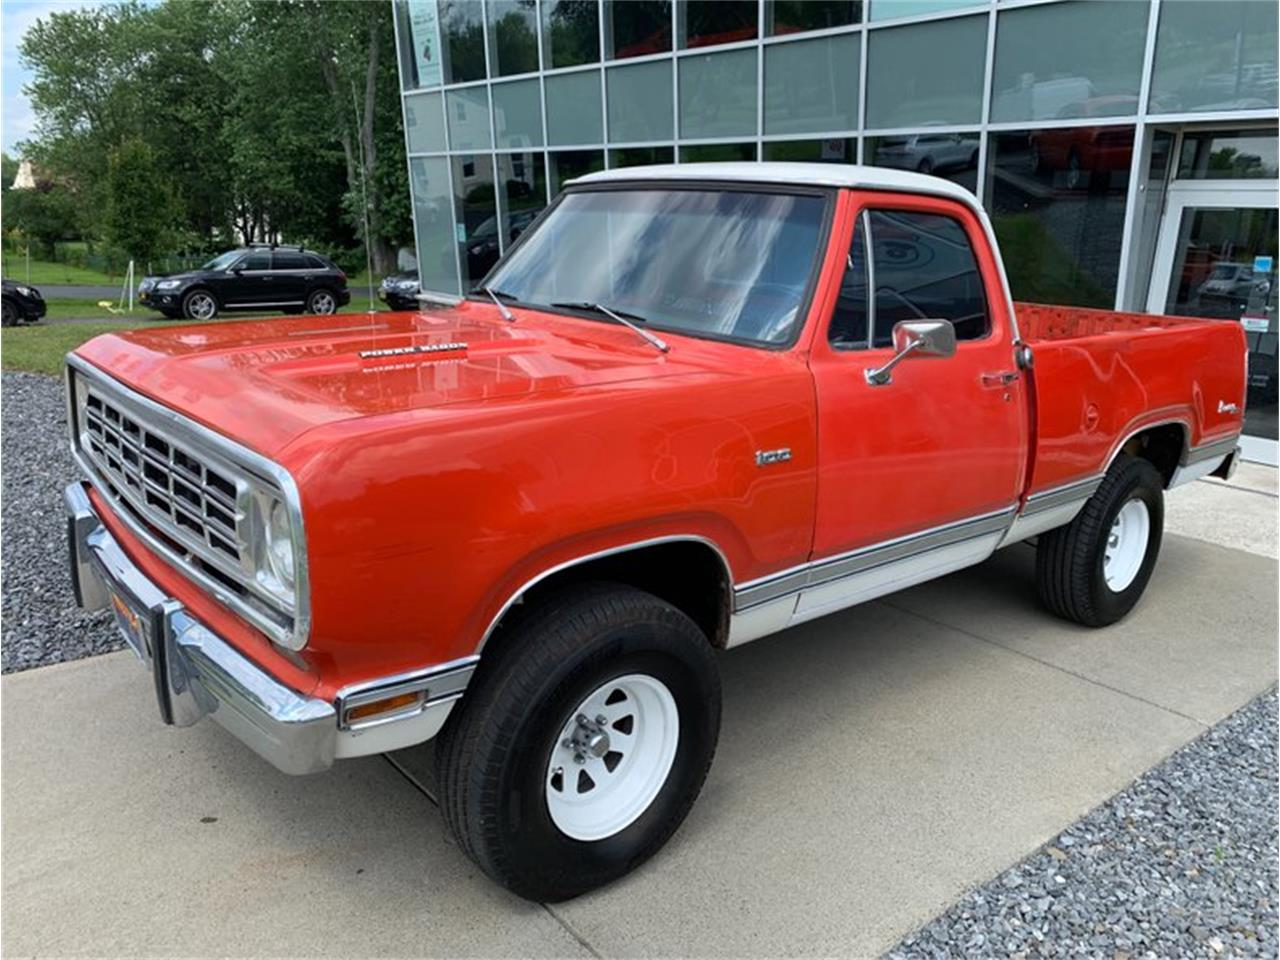 1976 Dodge Power Wagon For Sale In Saratoga Springs Ny Classiccarsbay Com